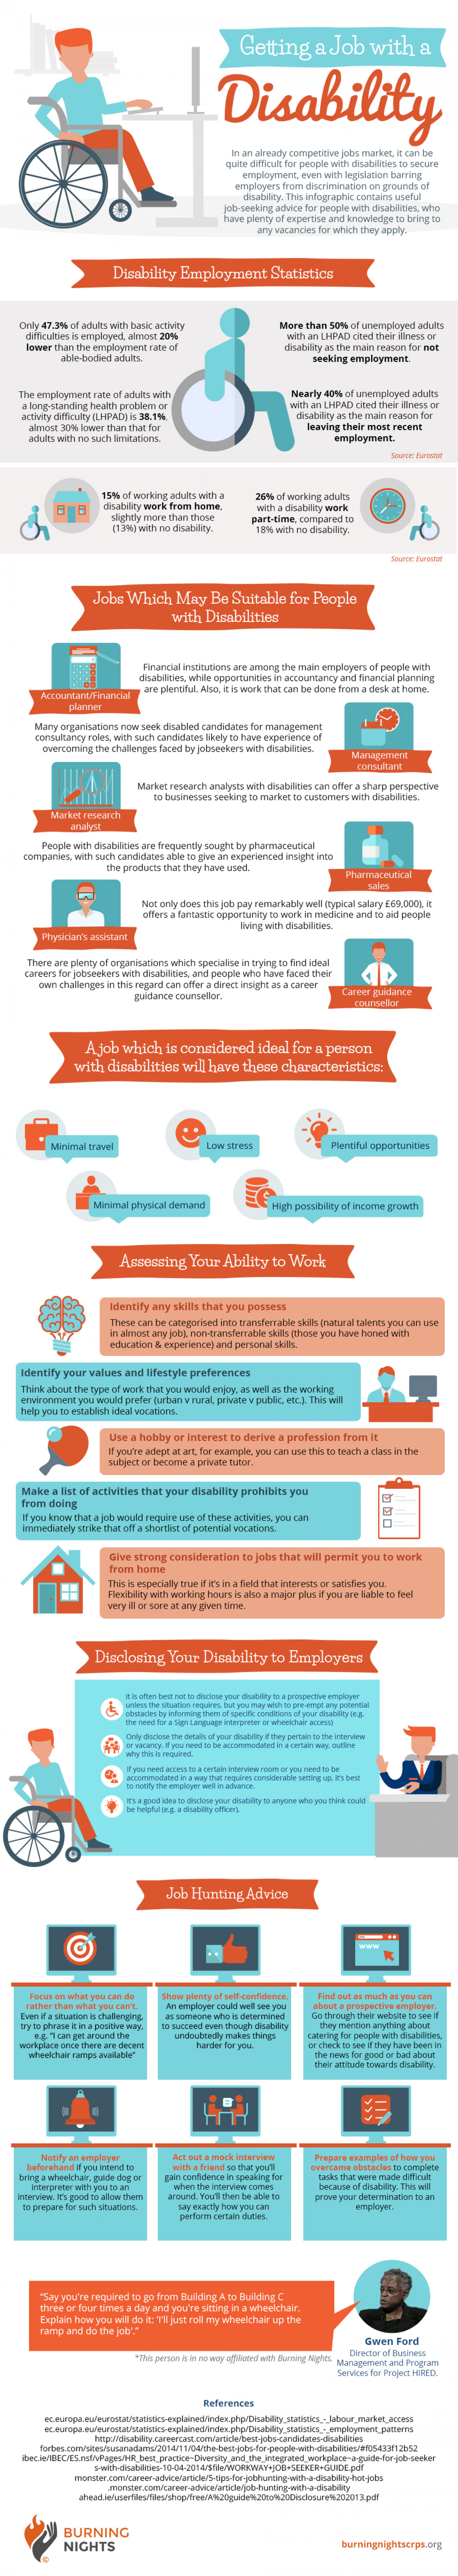 Infographic: Getting a Job With a Disability